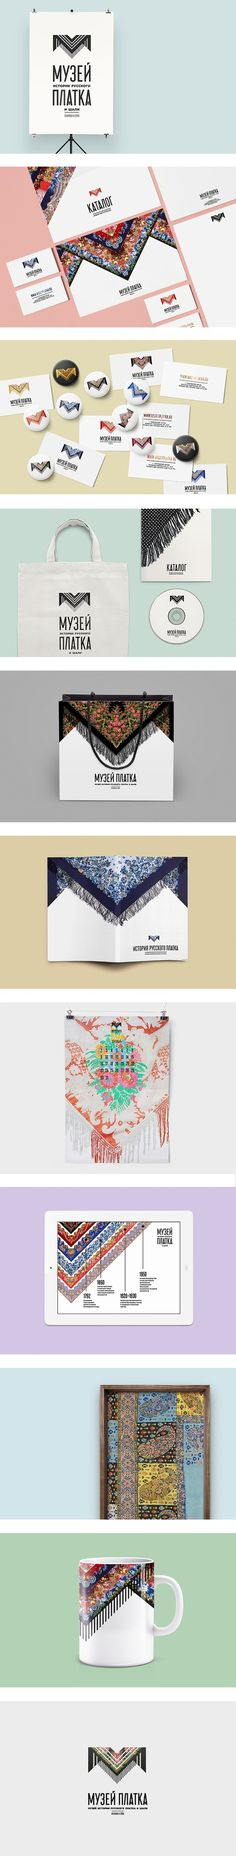 SHAWL MUSEUM by Vova Lifanov, via Behance #patterns #branding